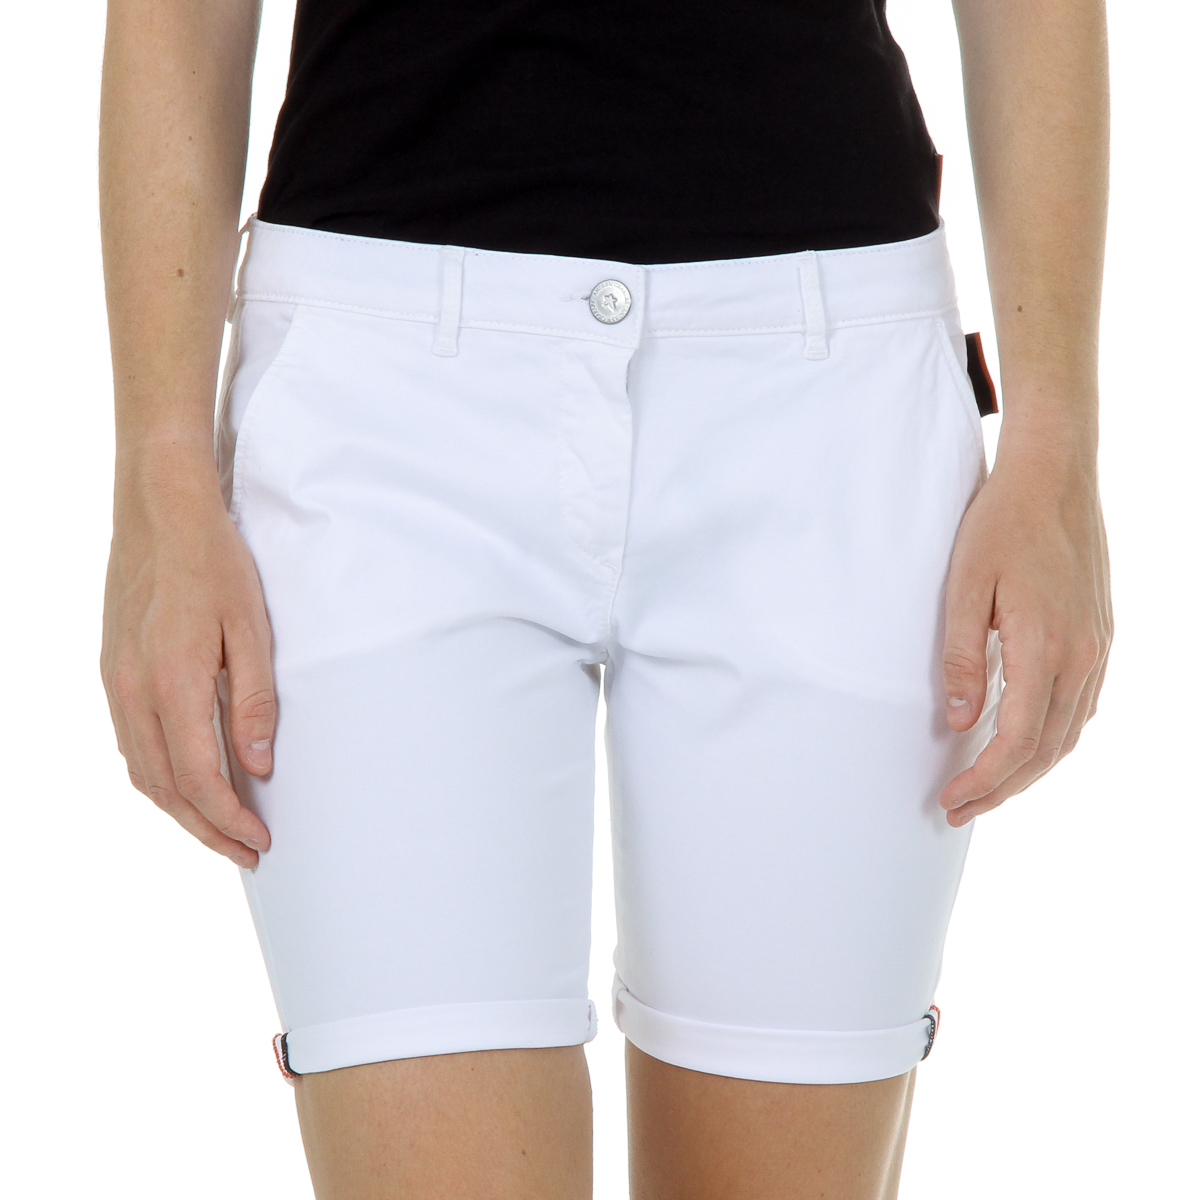 Primary image for Andrew Charles Womens Shorts White SAFIA